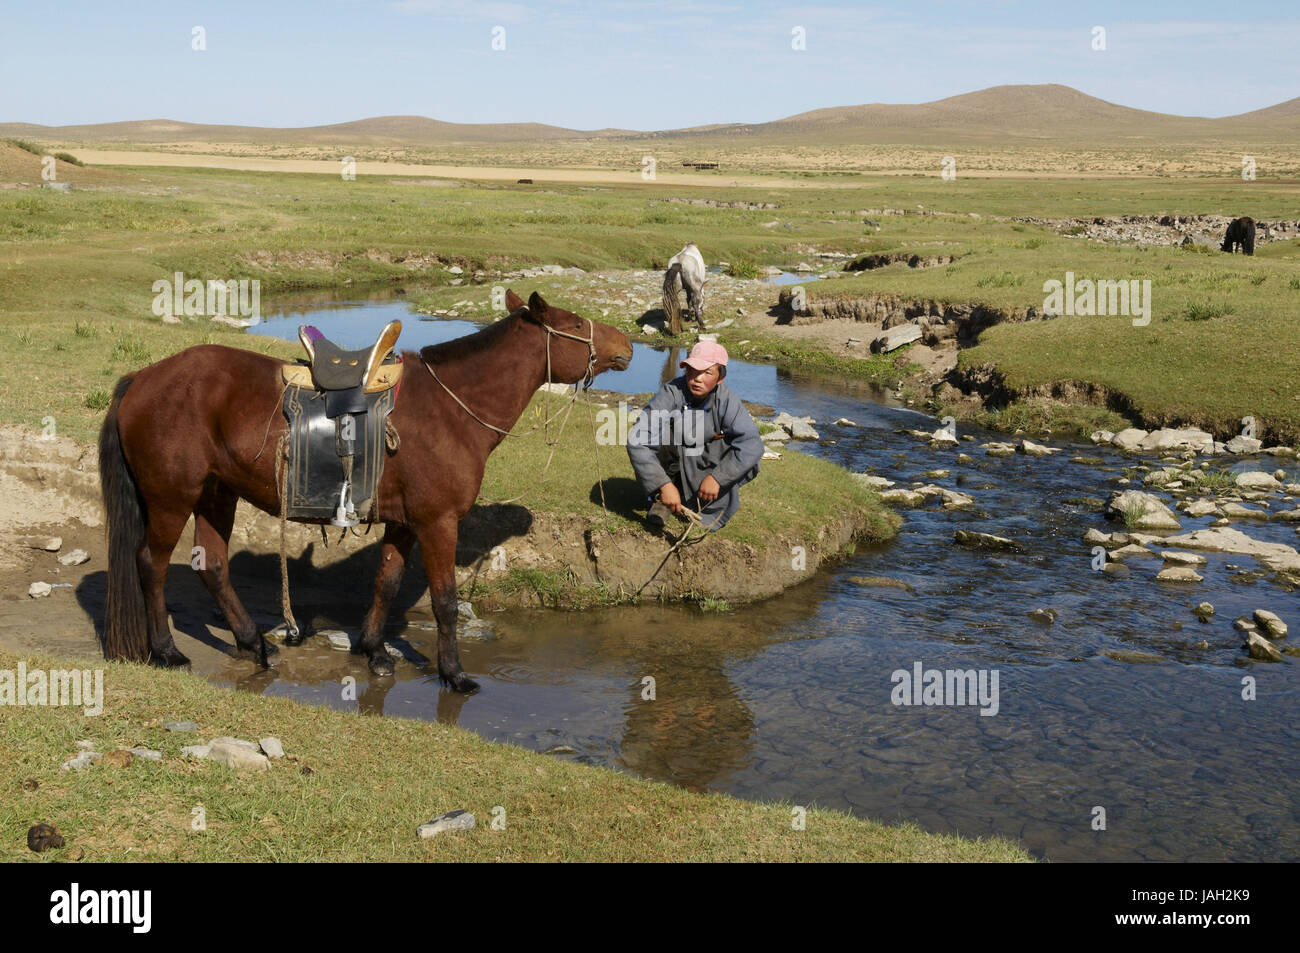 Mongolia,Central Asia,Ovorkhangai province,bleed,riverside,rest, Stock Photo